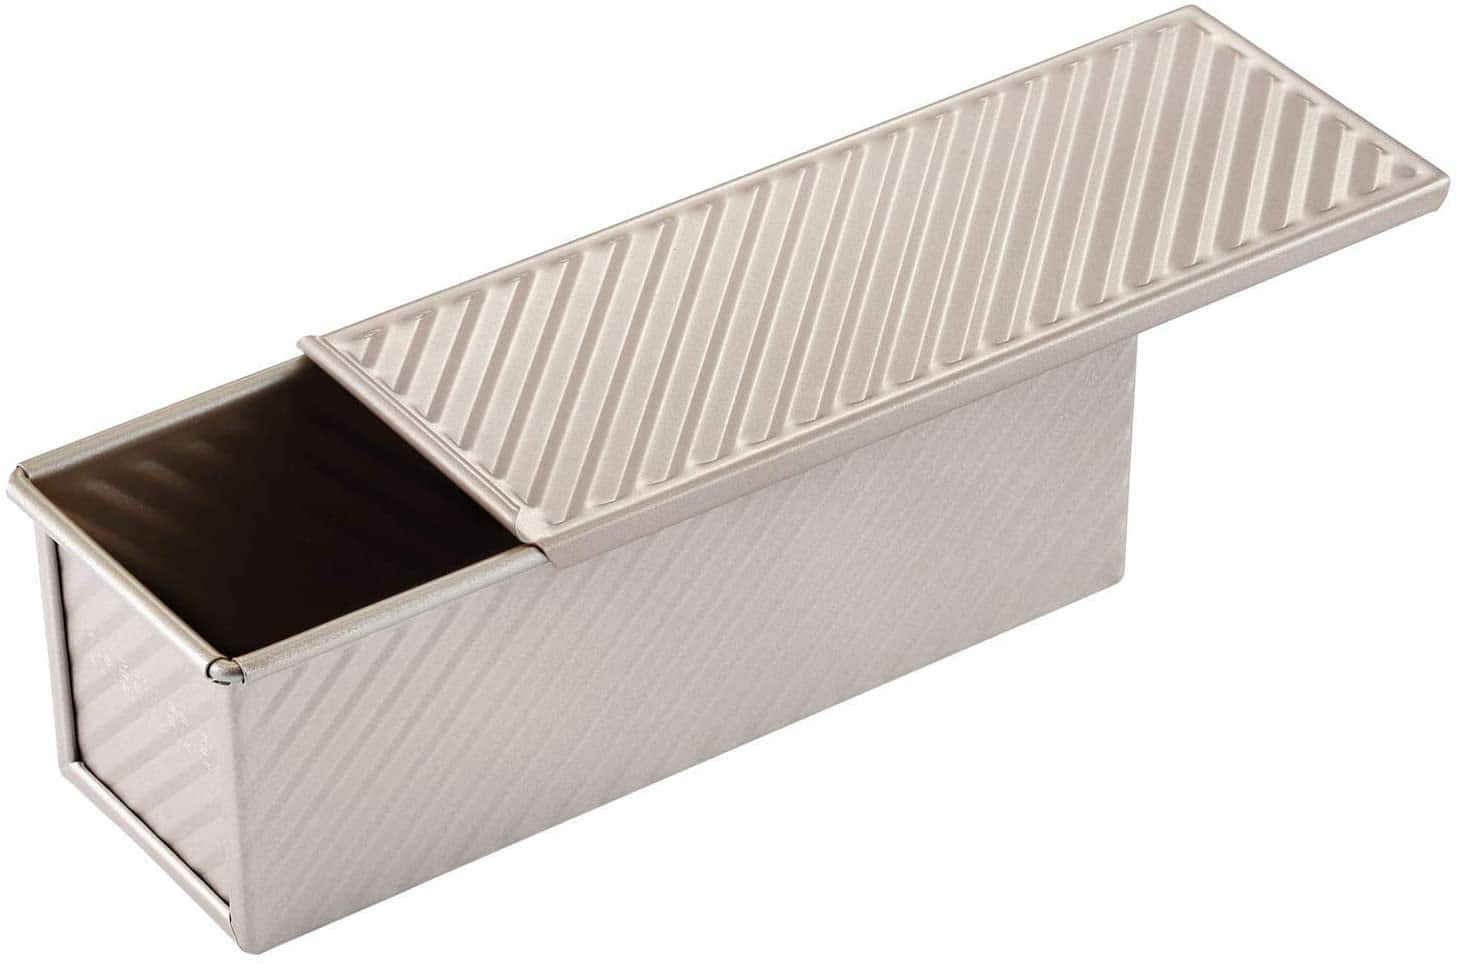 CHEFMADE Mini Pullman Loaf Pan with Lid, 0.66Lb $10